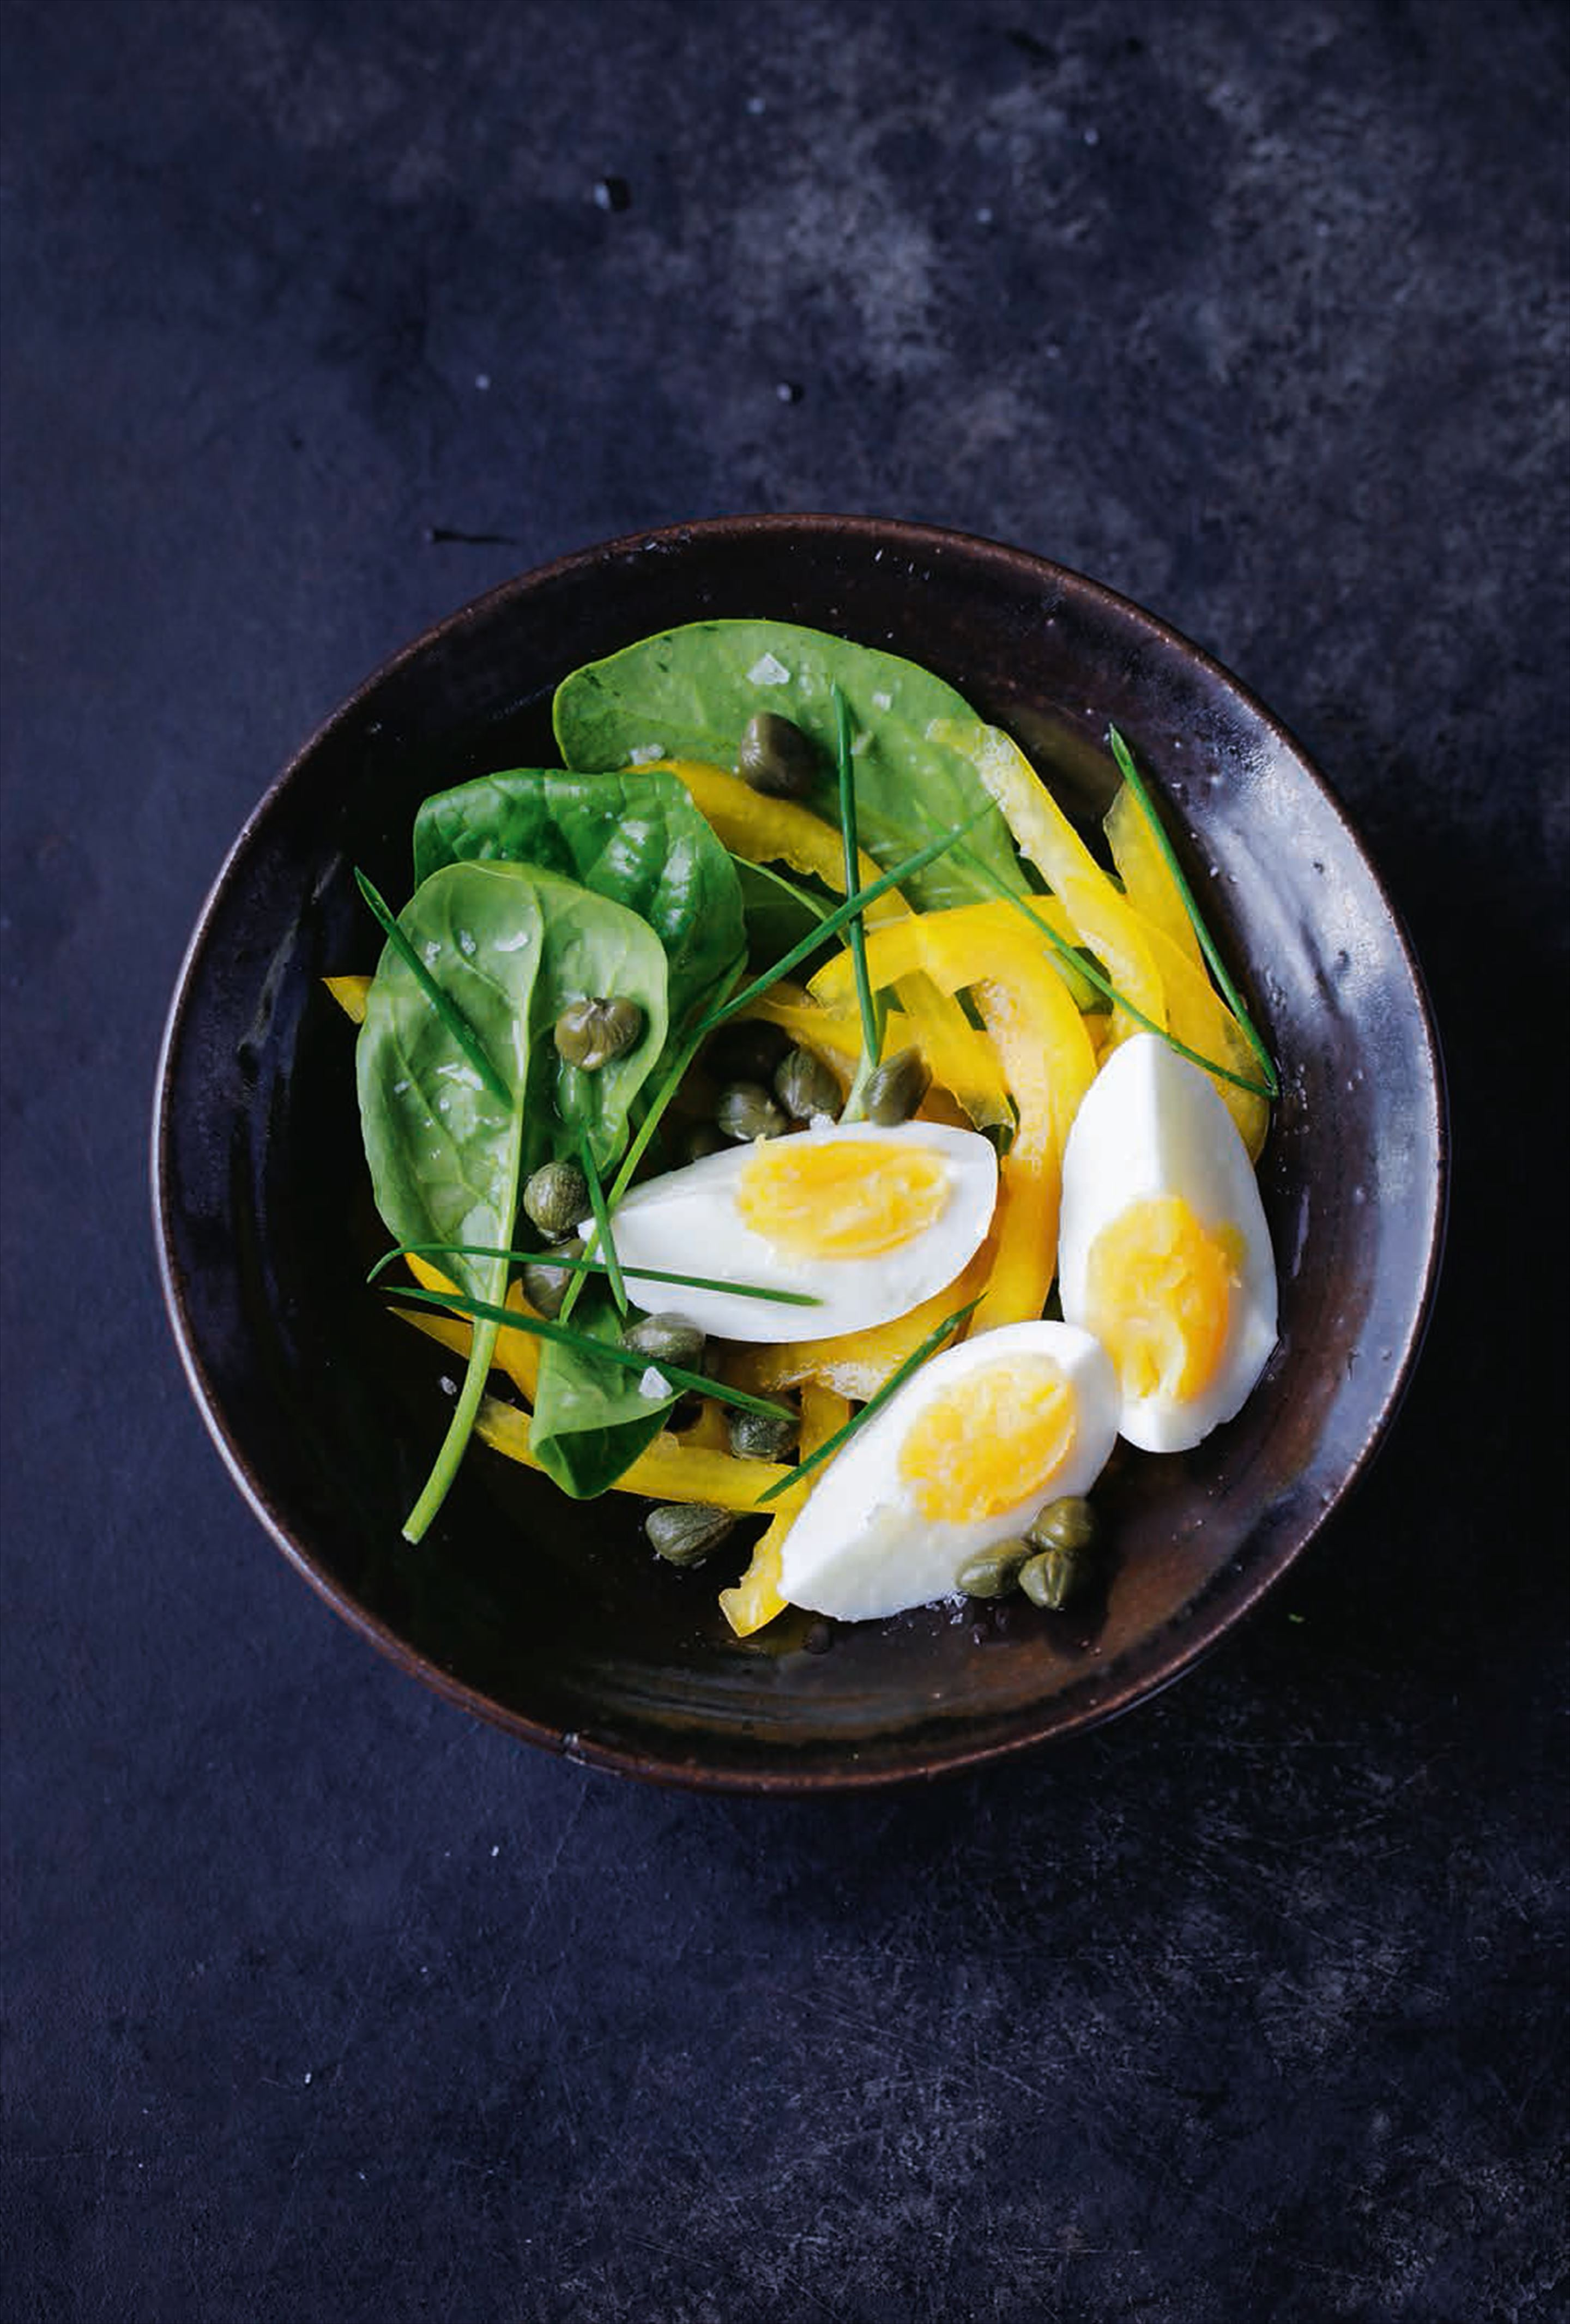 Boiled eggs & caper salad